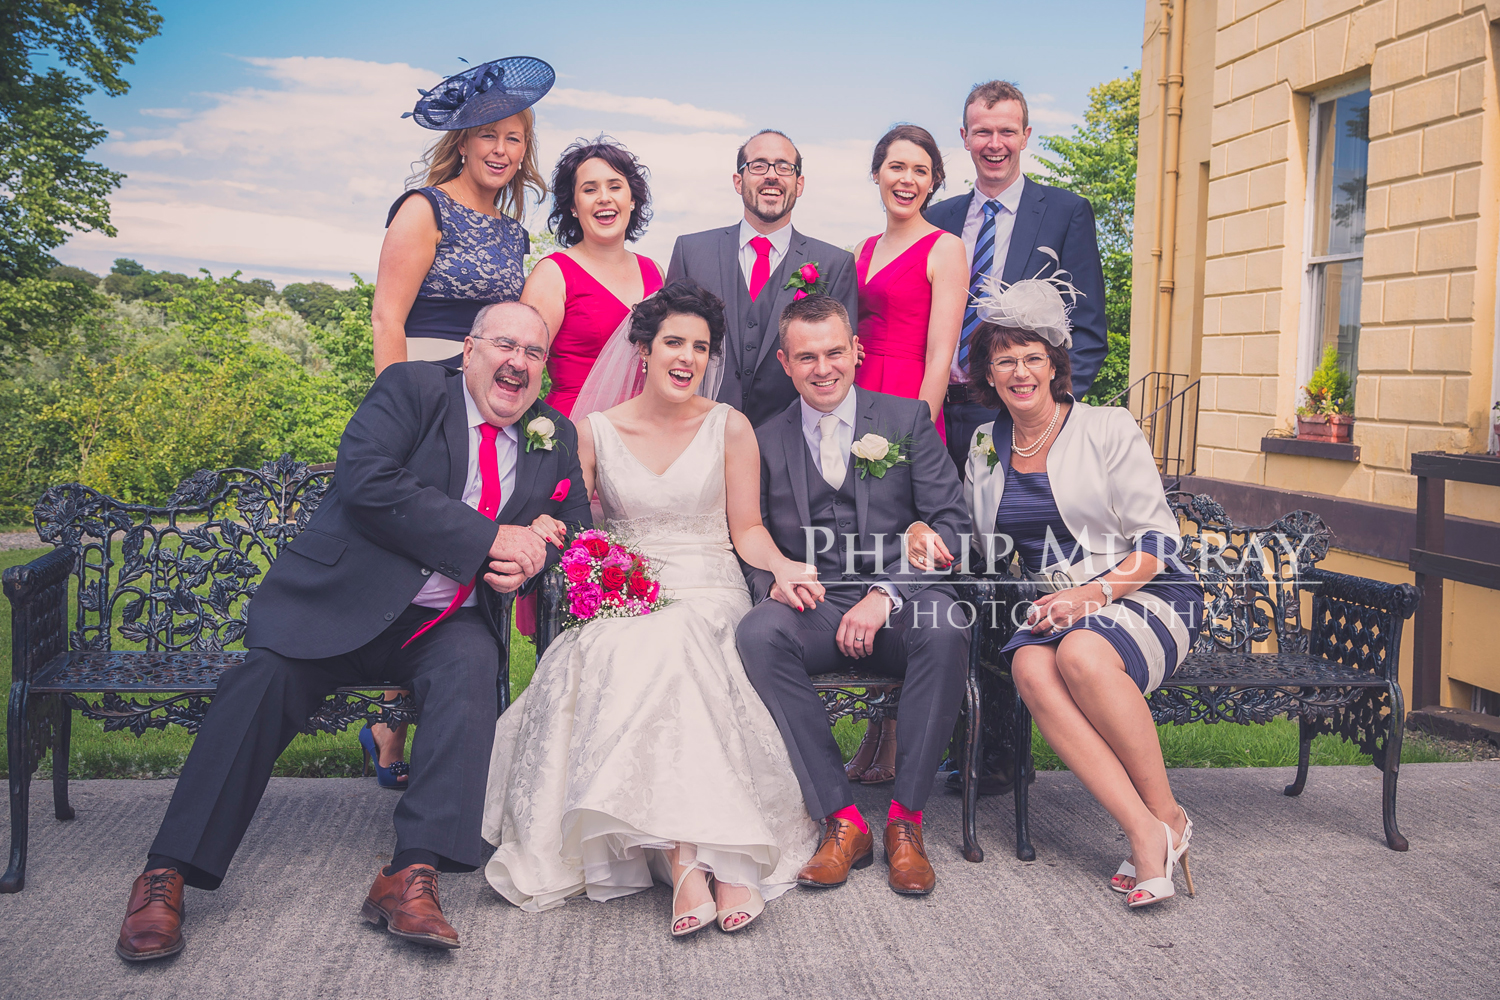 Wedding_A&S_Couple_Bride_Groom_Family_Laughing_Bridal_Party_Philip_Murray_Photography_Dublin